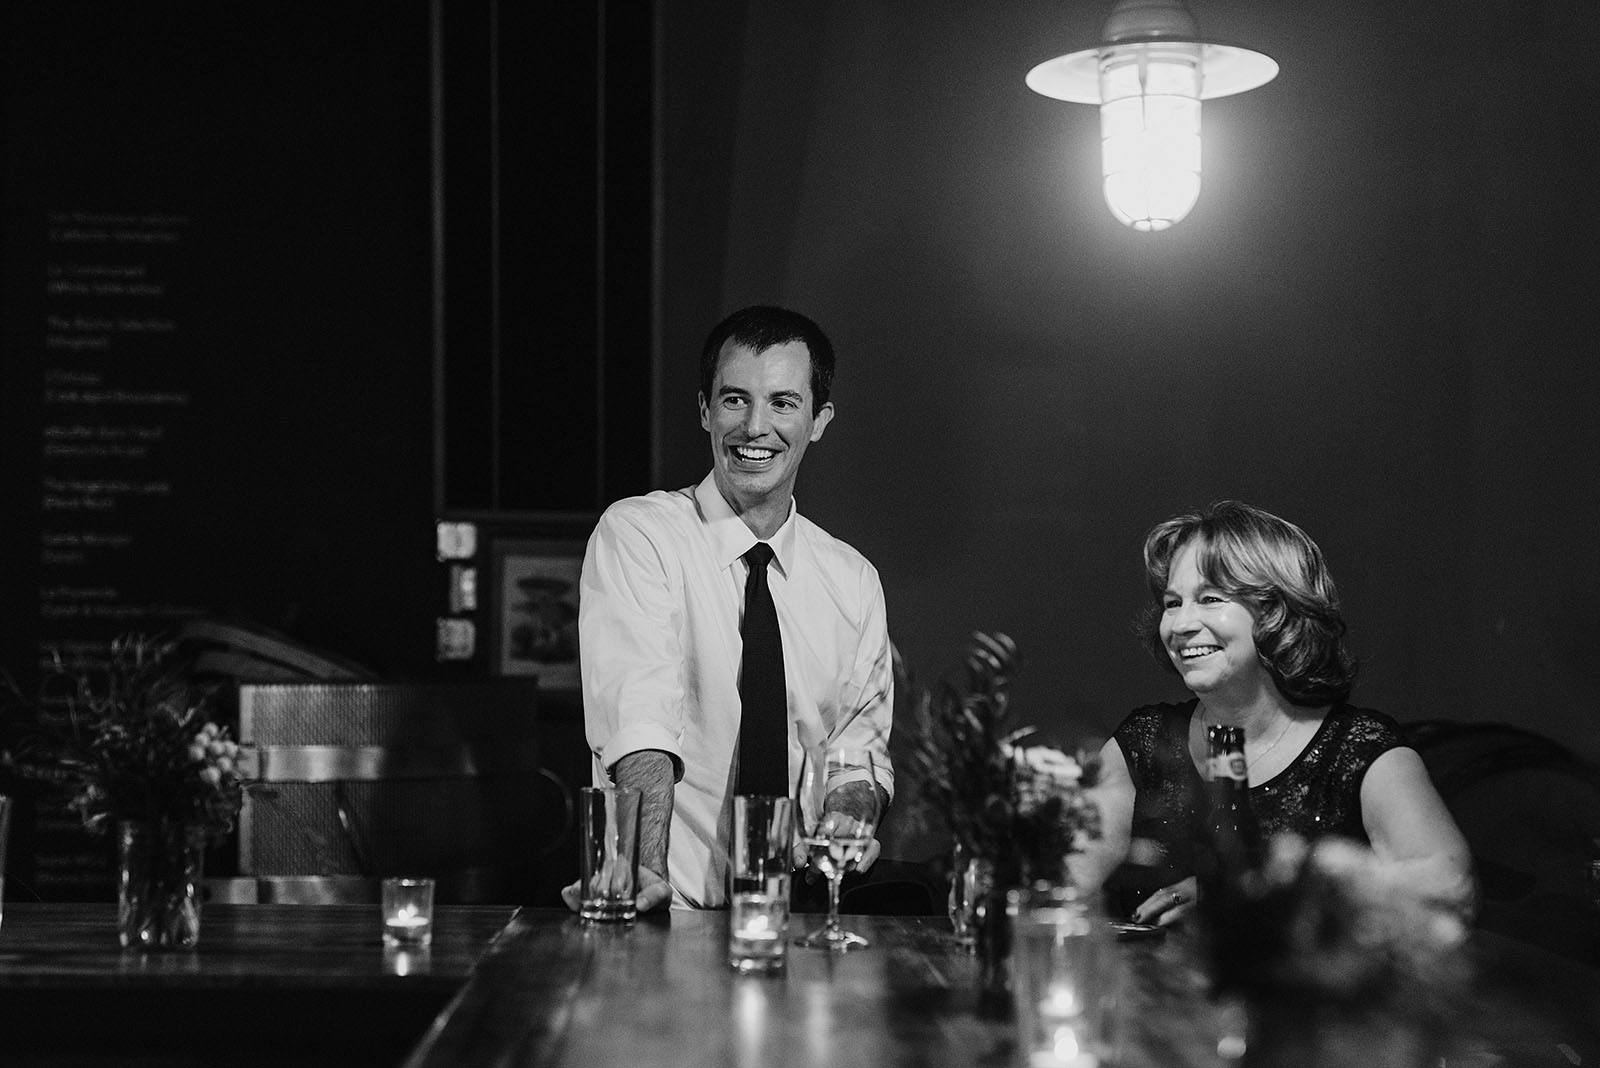 Mother of the groom laughing with guests at an Intimate Restaurant Wedding in Portland, OR